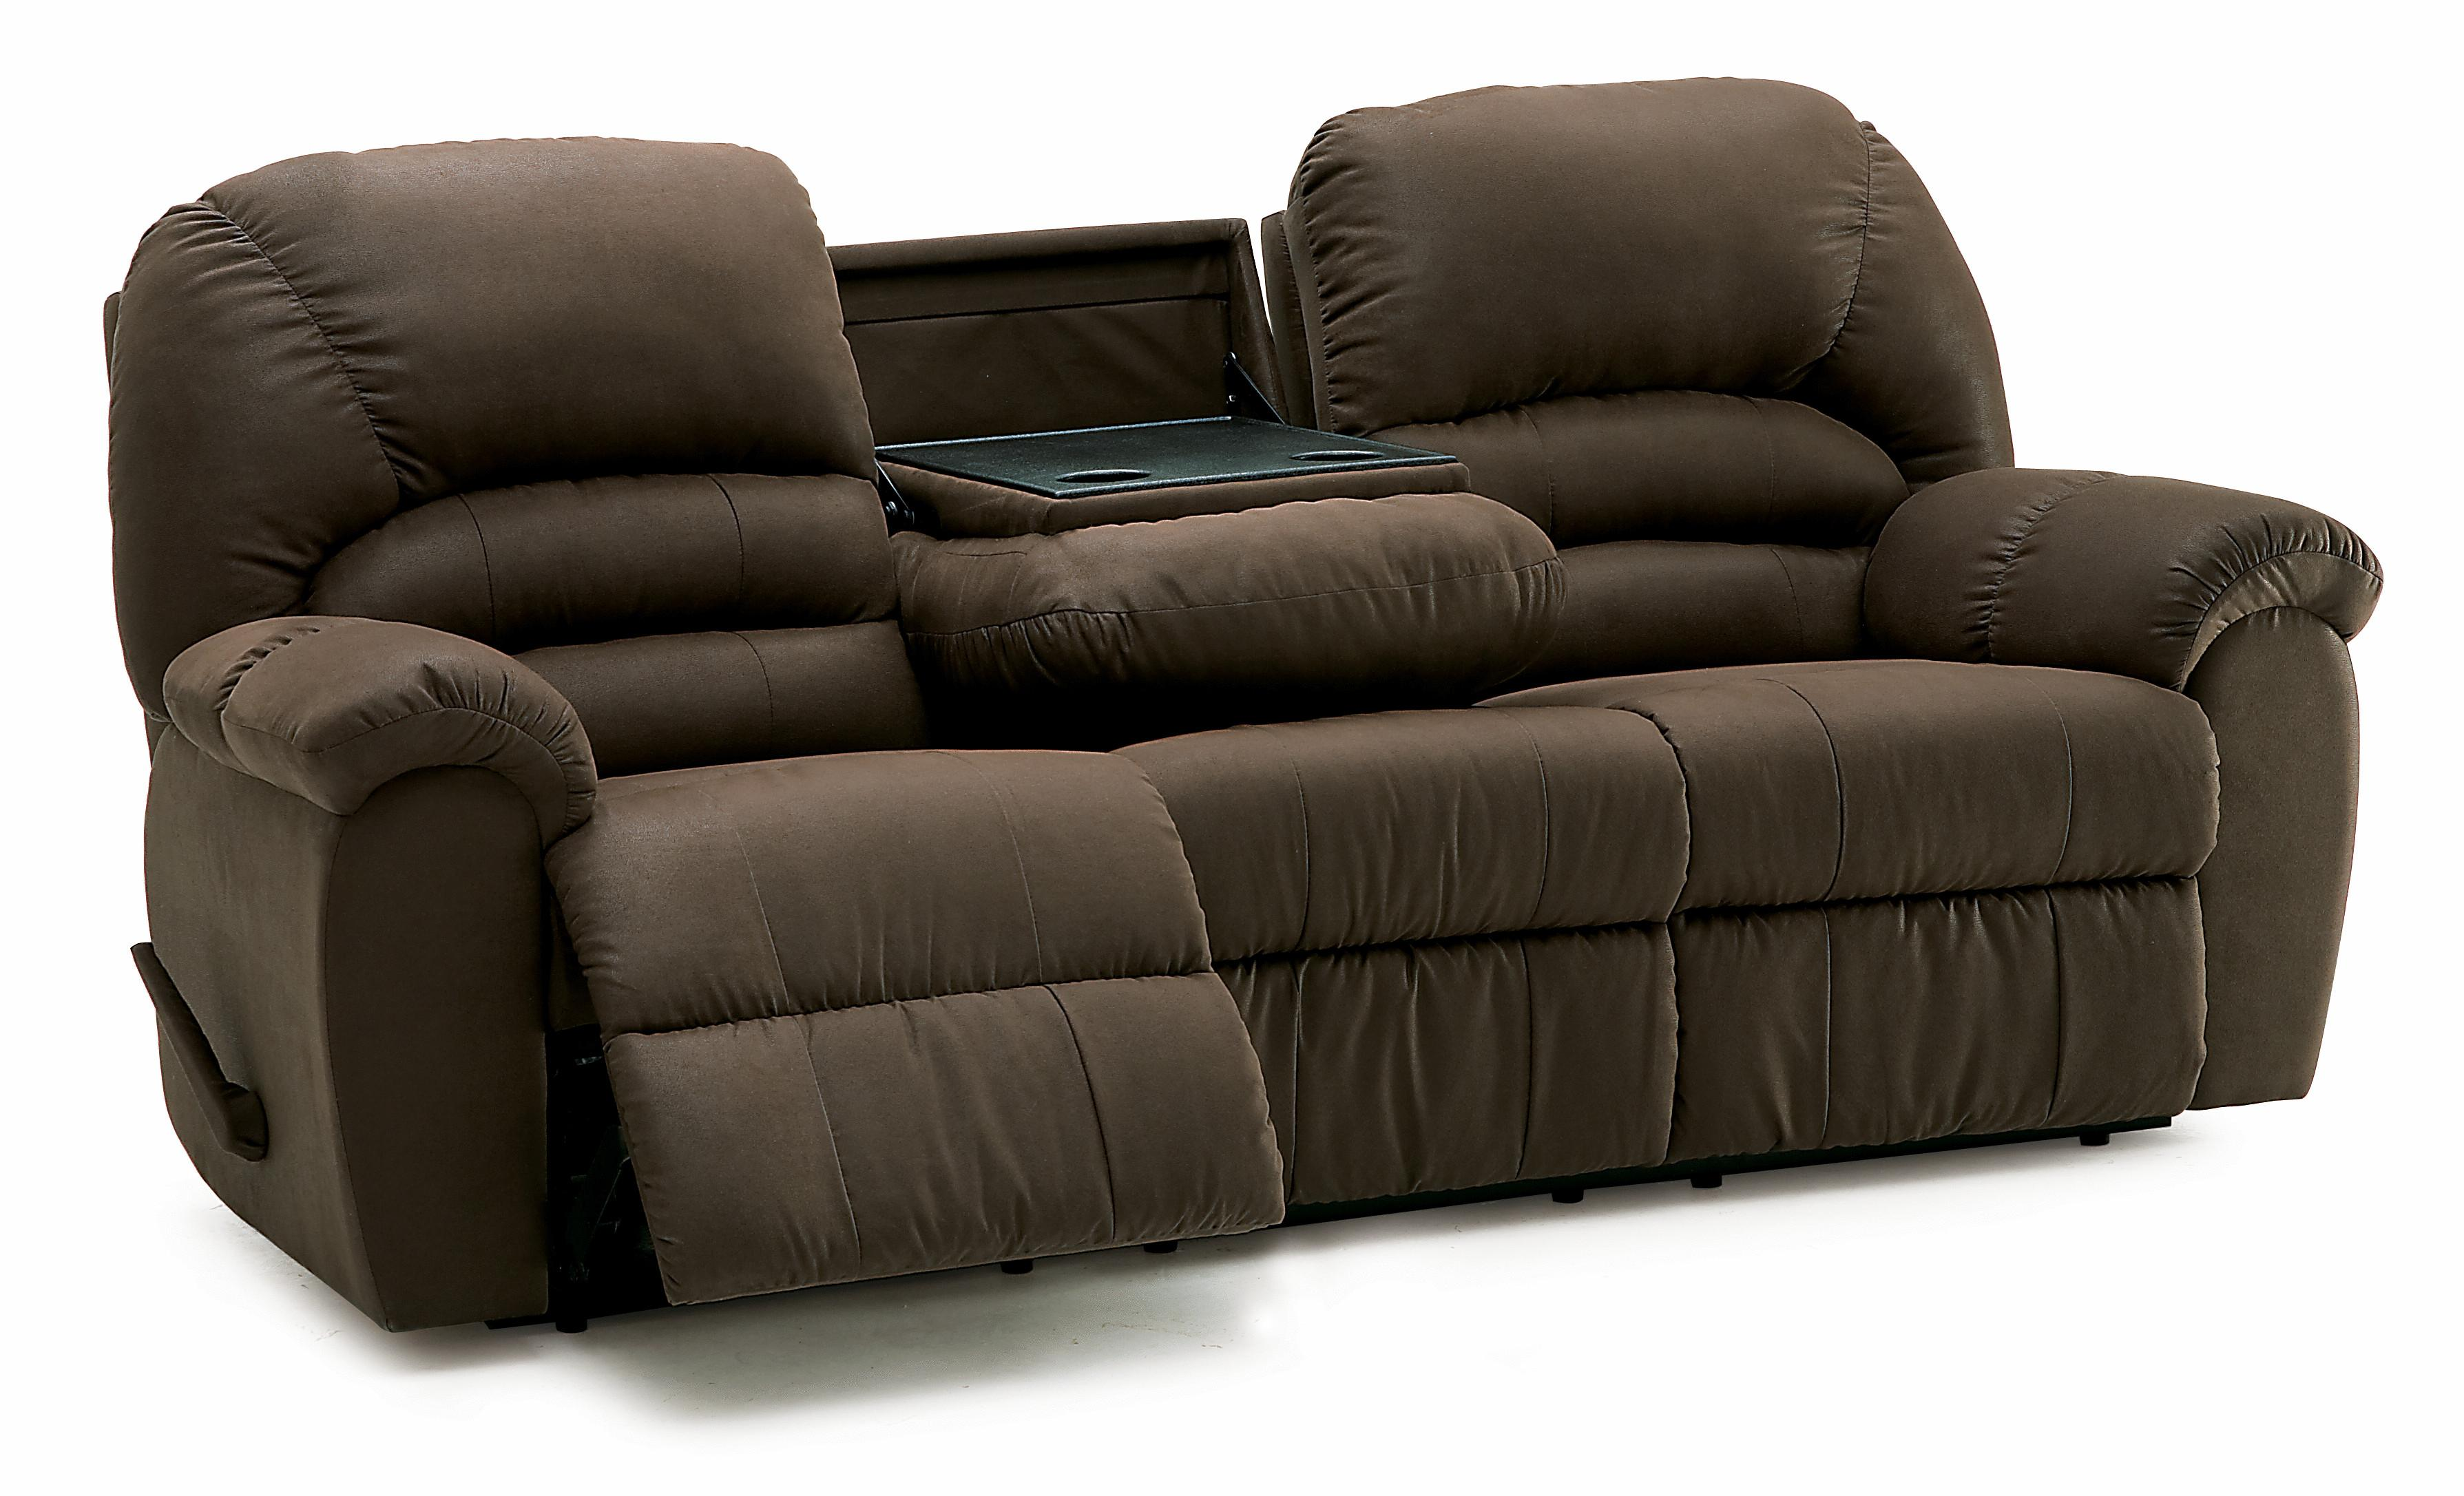 Palliser taurus 46093 52 casual reclining sofa with center for Sectional sofa with drop down table